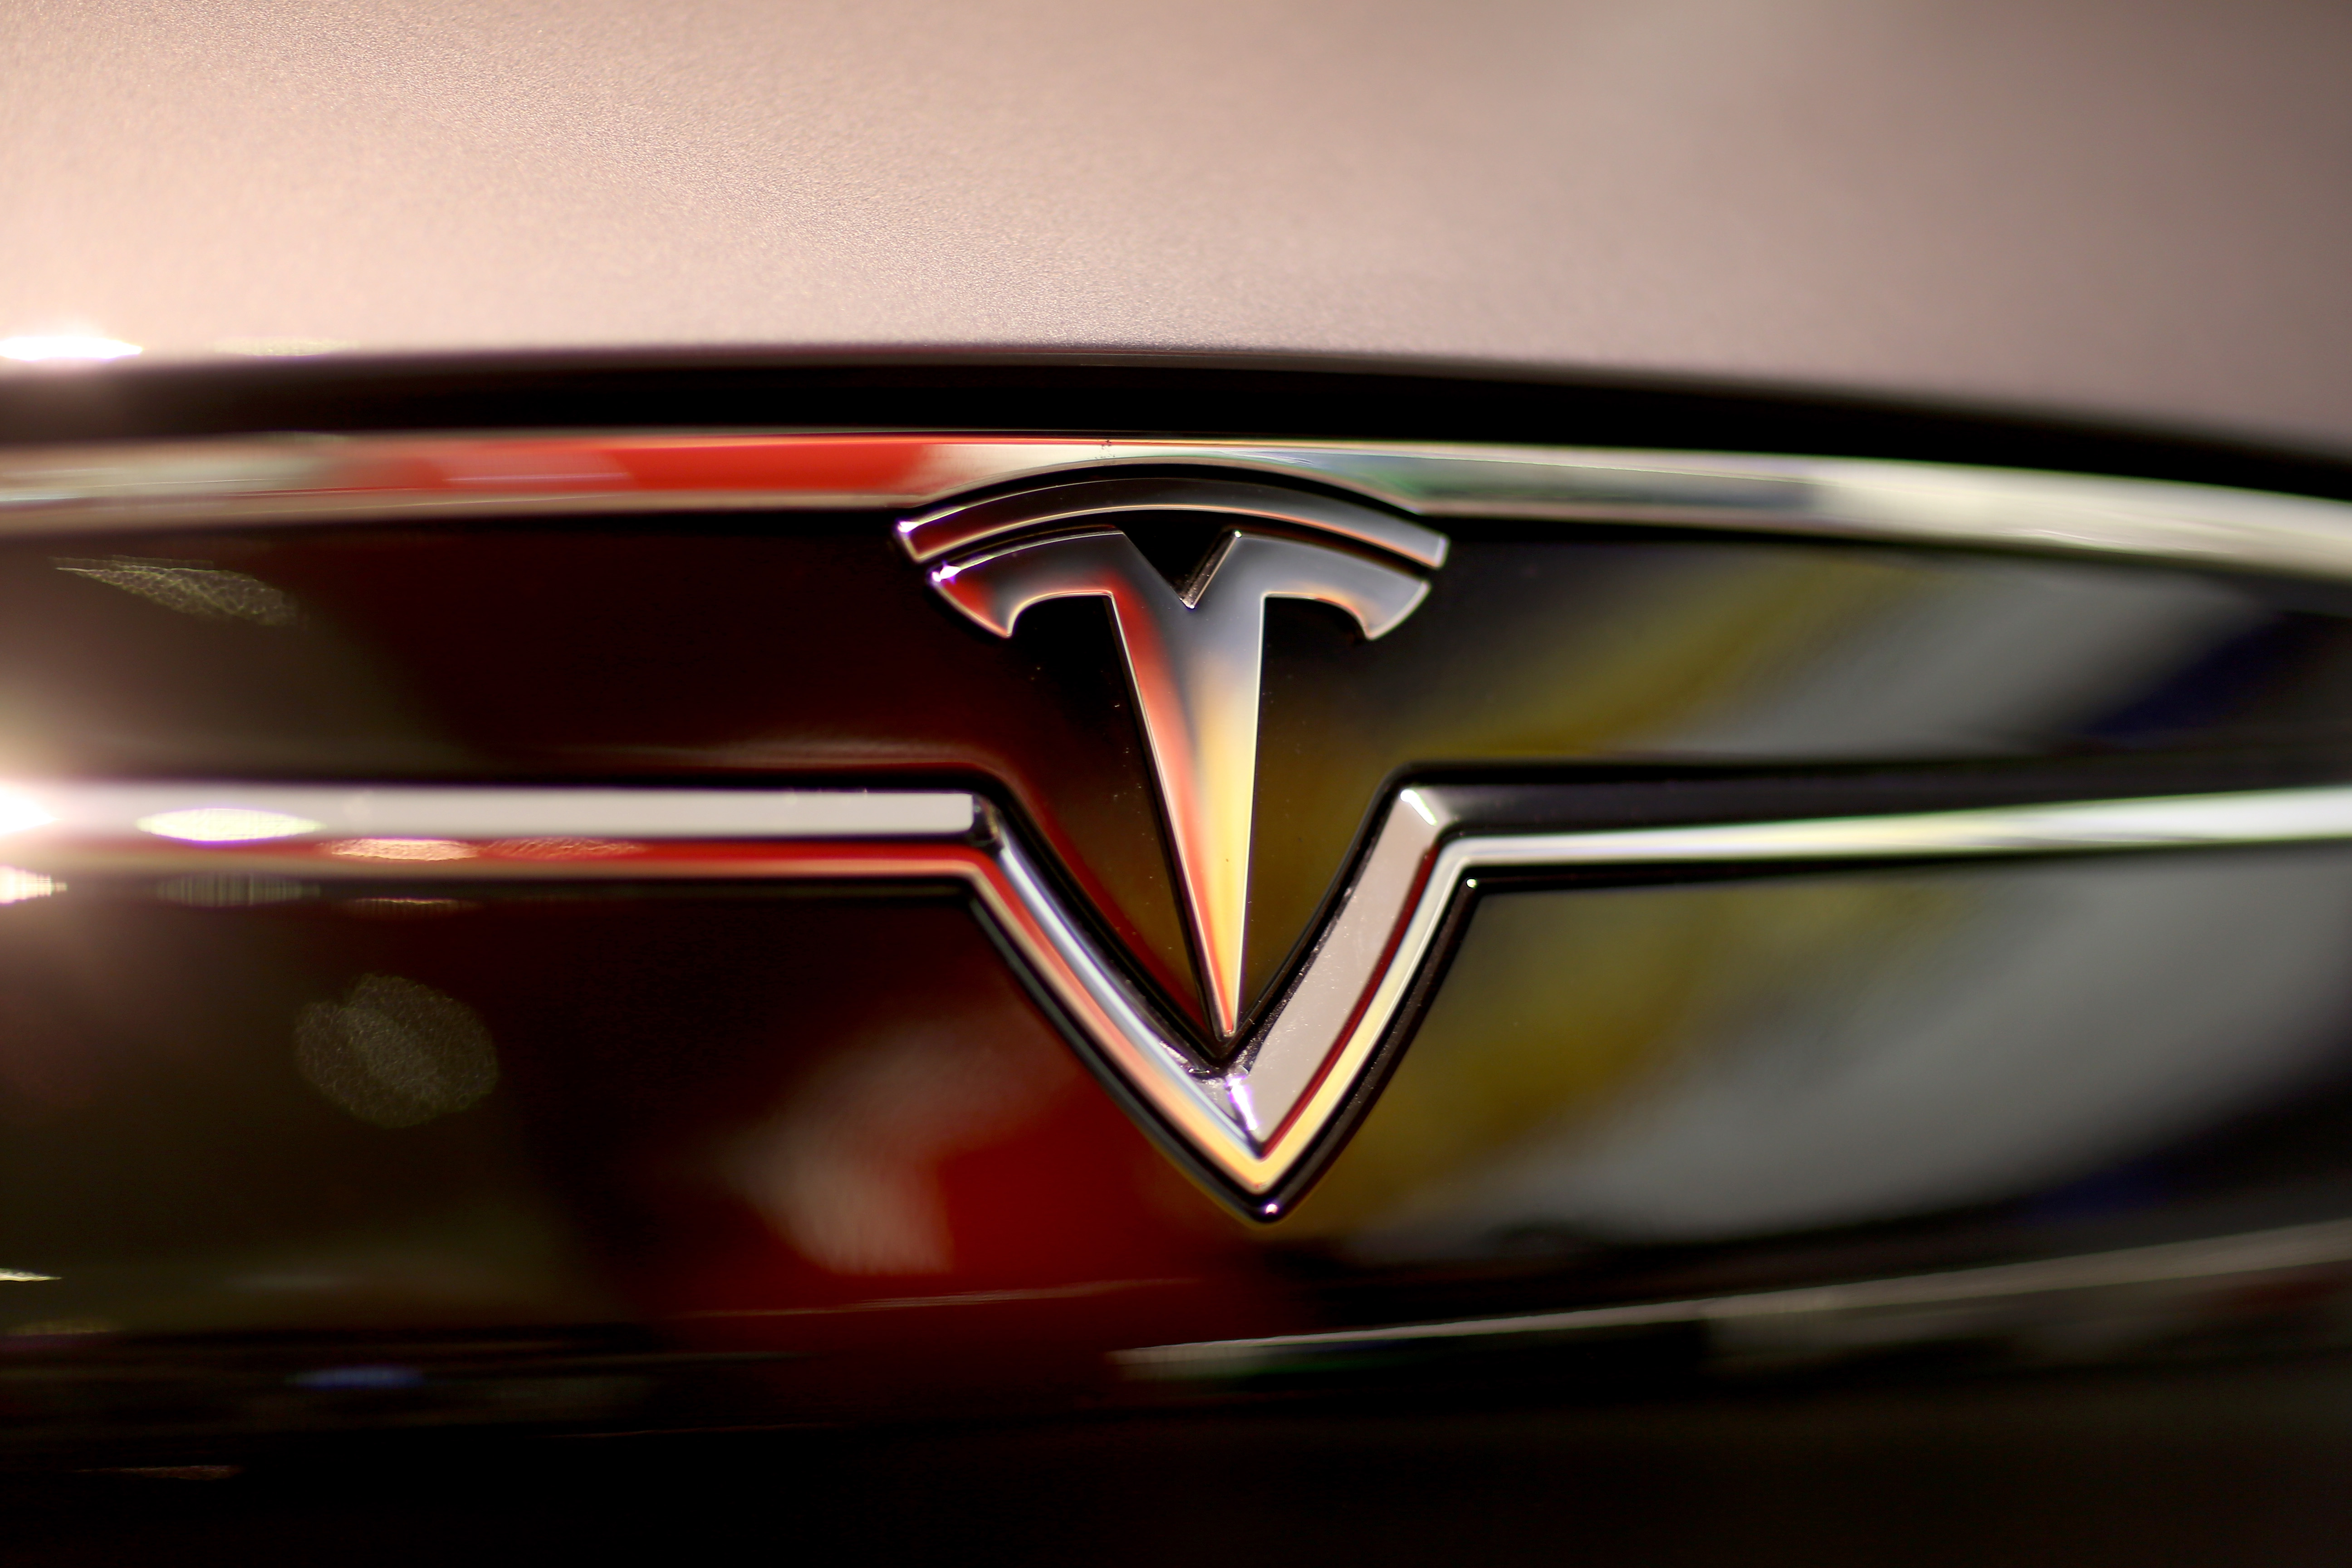 Tesla's iconic logo, as seen on one of their car models.